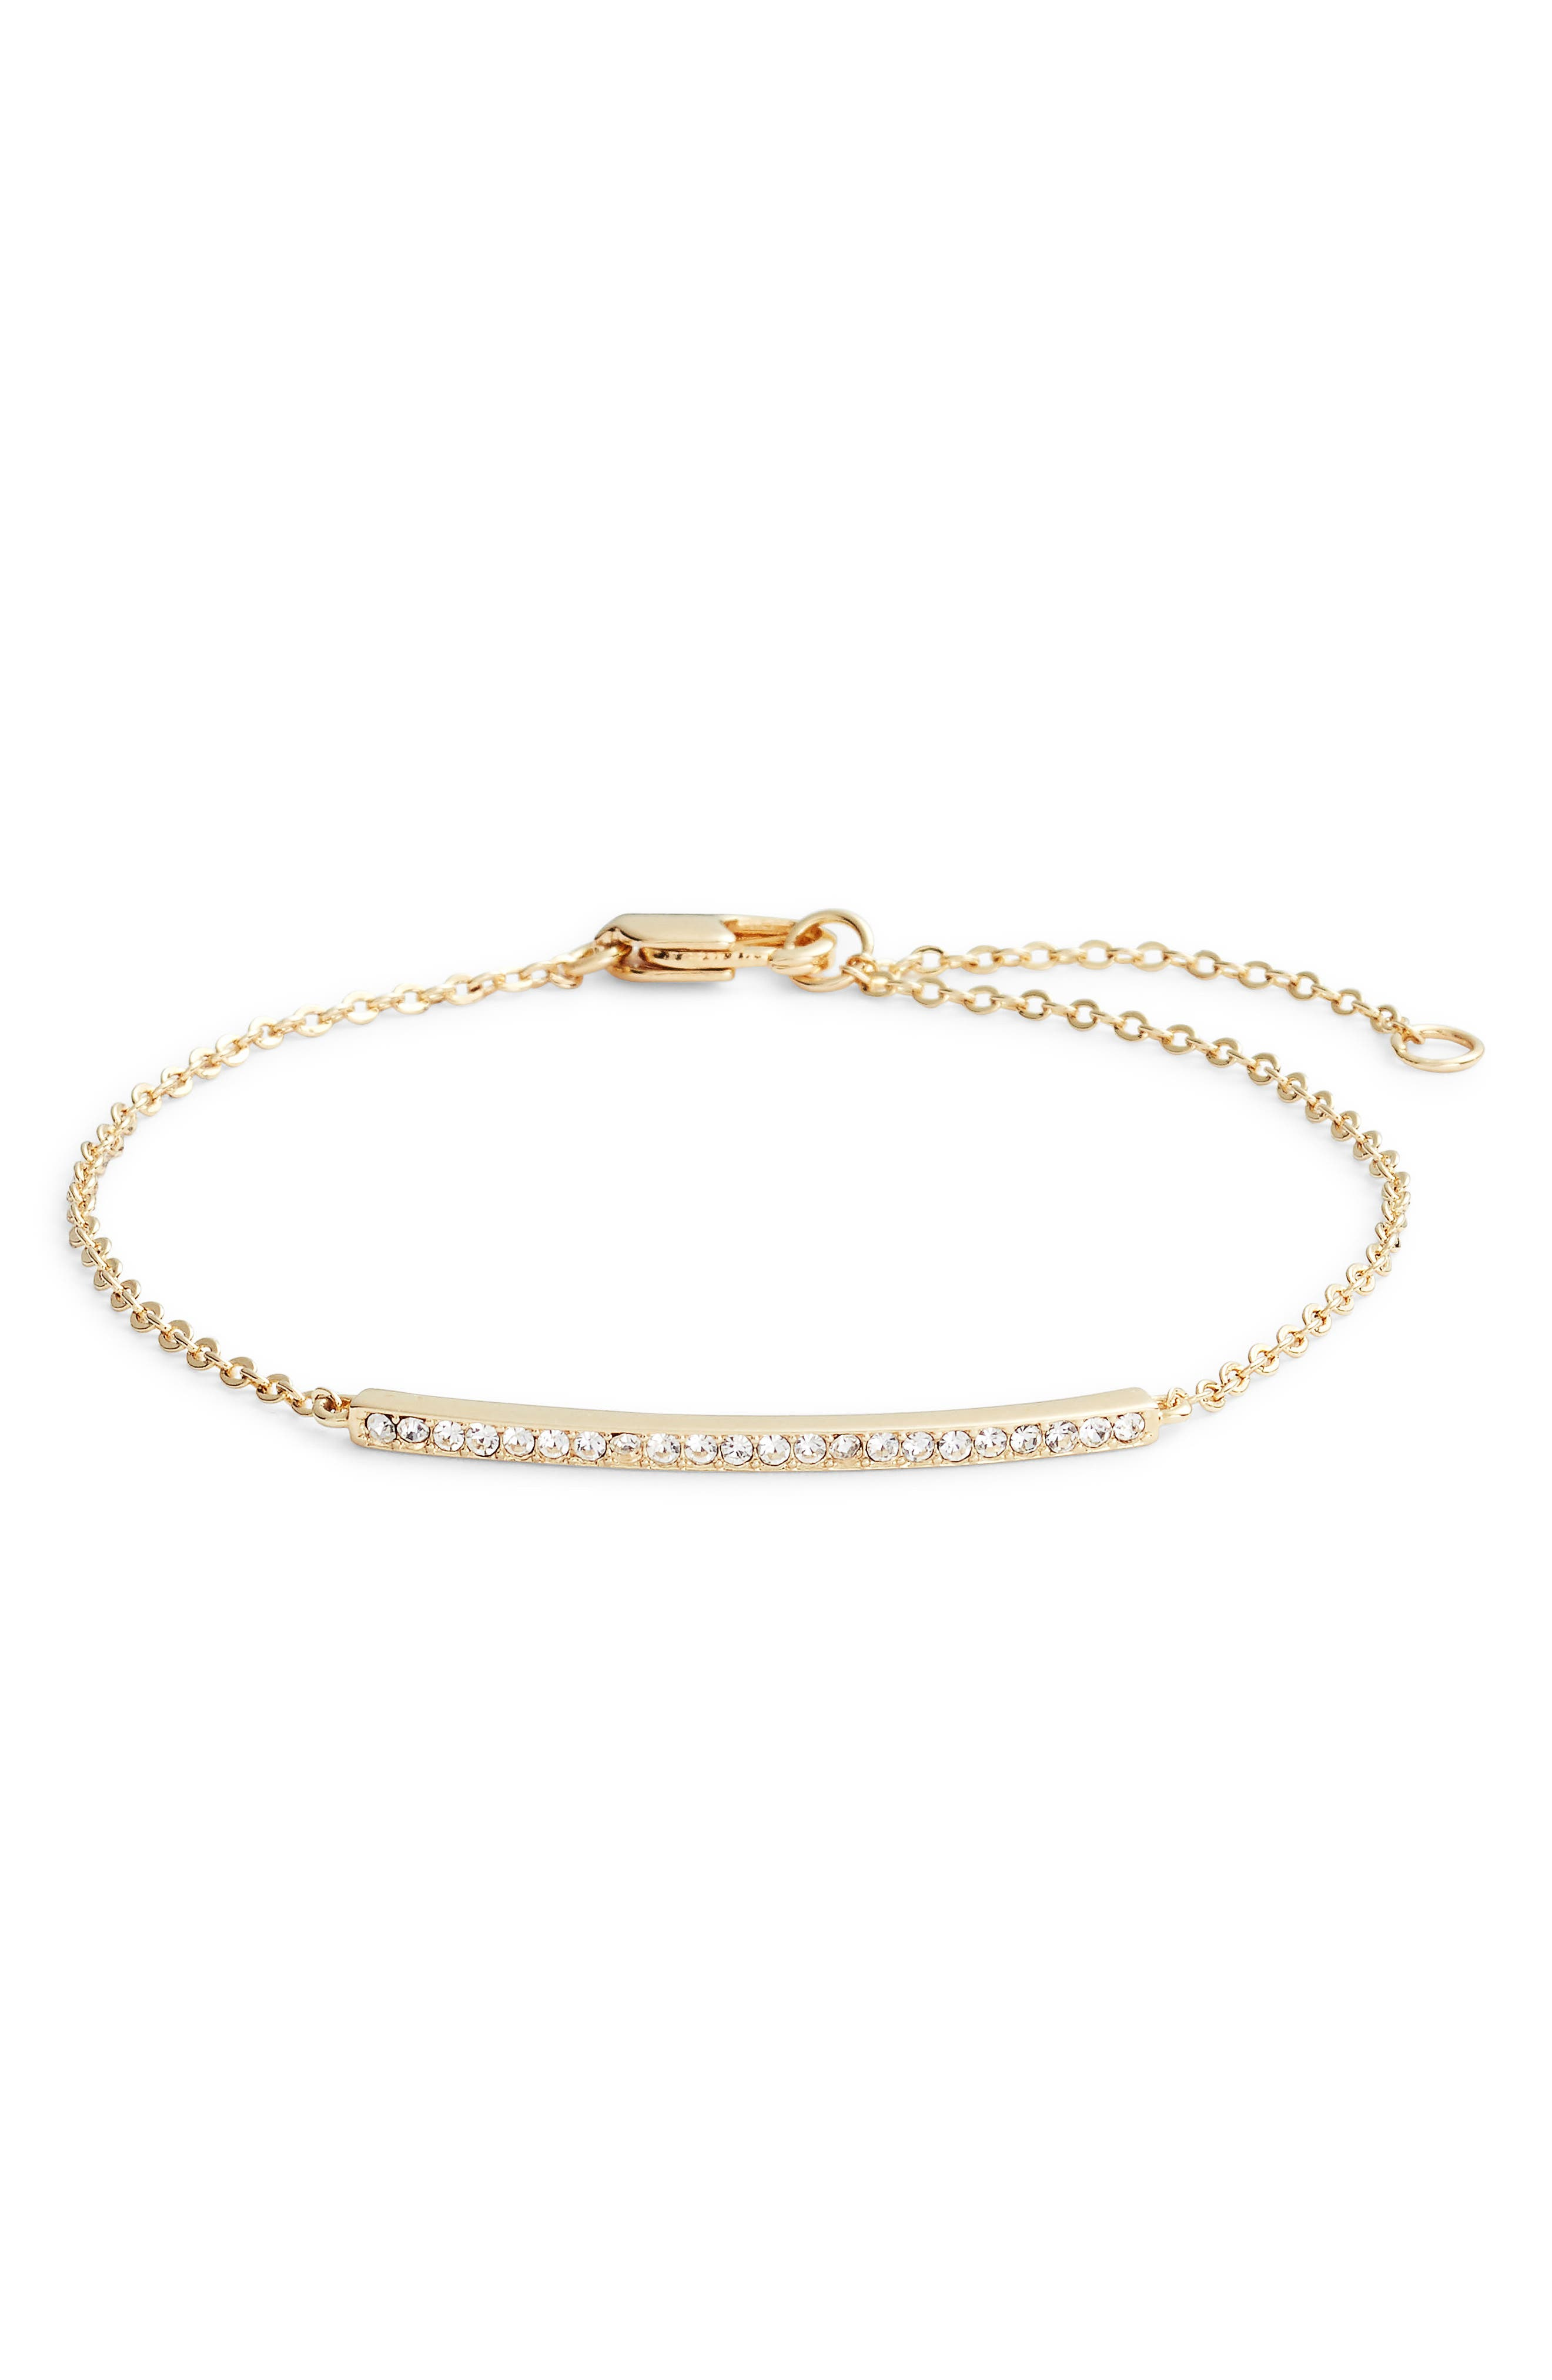 Jewelry & Accessories Bangles With Certificate High Quality Yu Bangle Bangle Precious Bangle Jewelry Womens Jewelry/ Year-End Bargain Sale